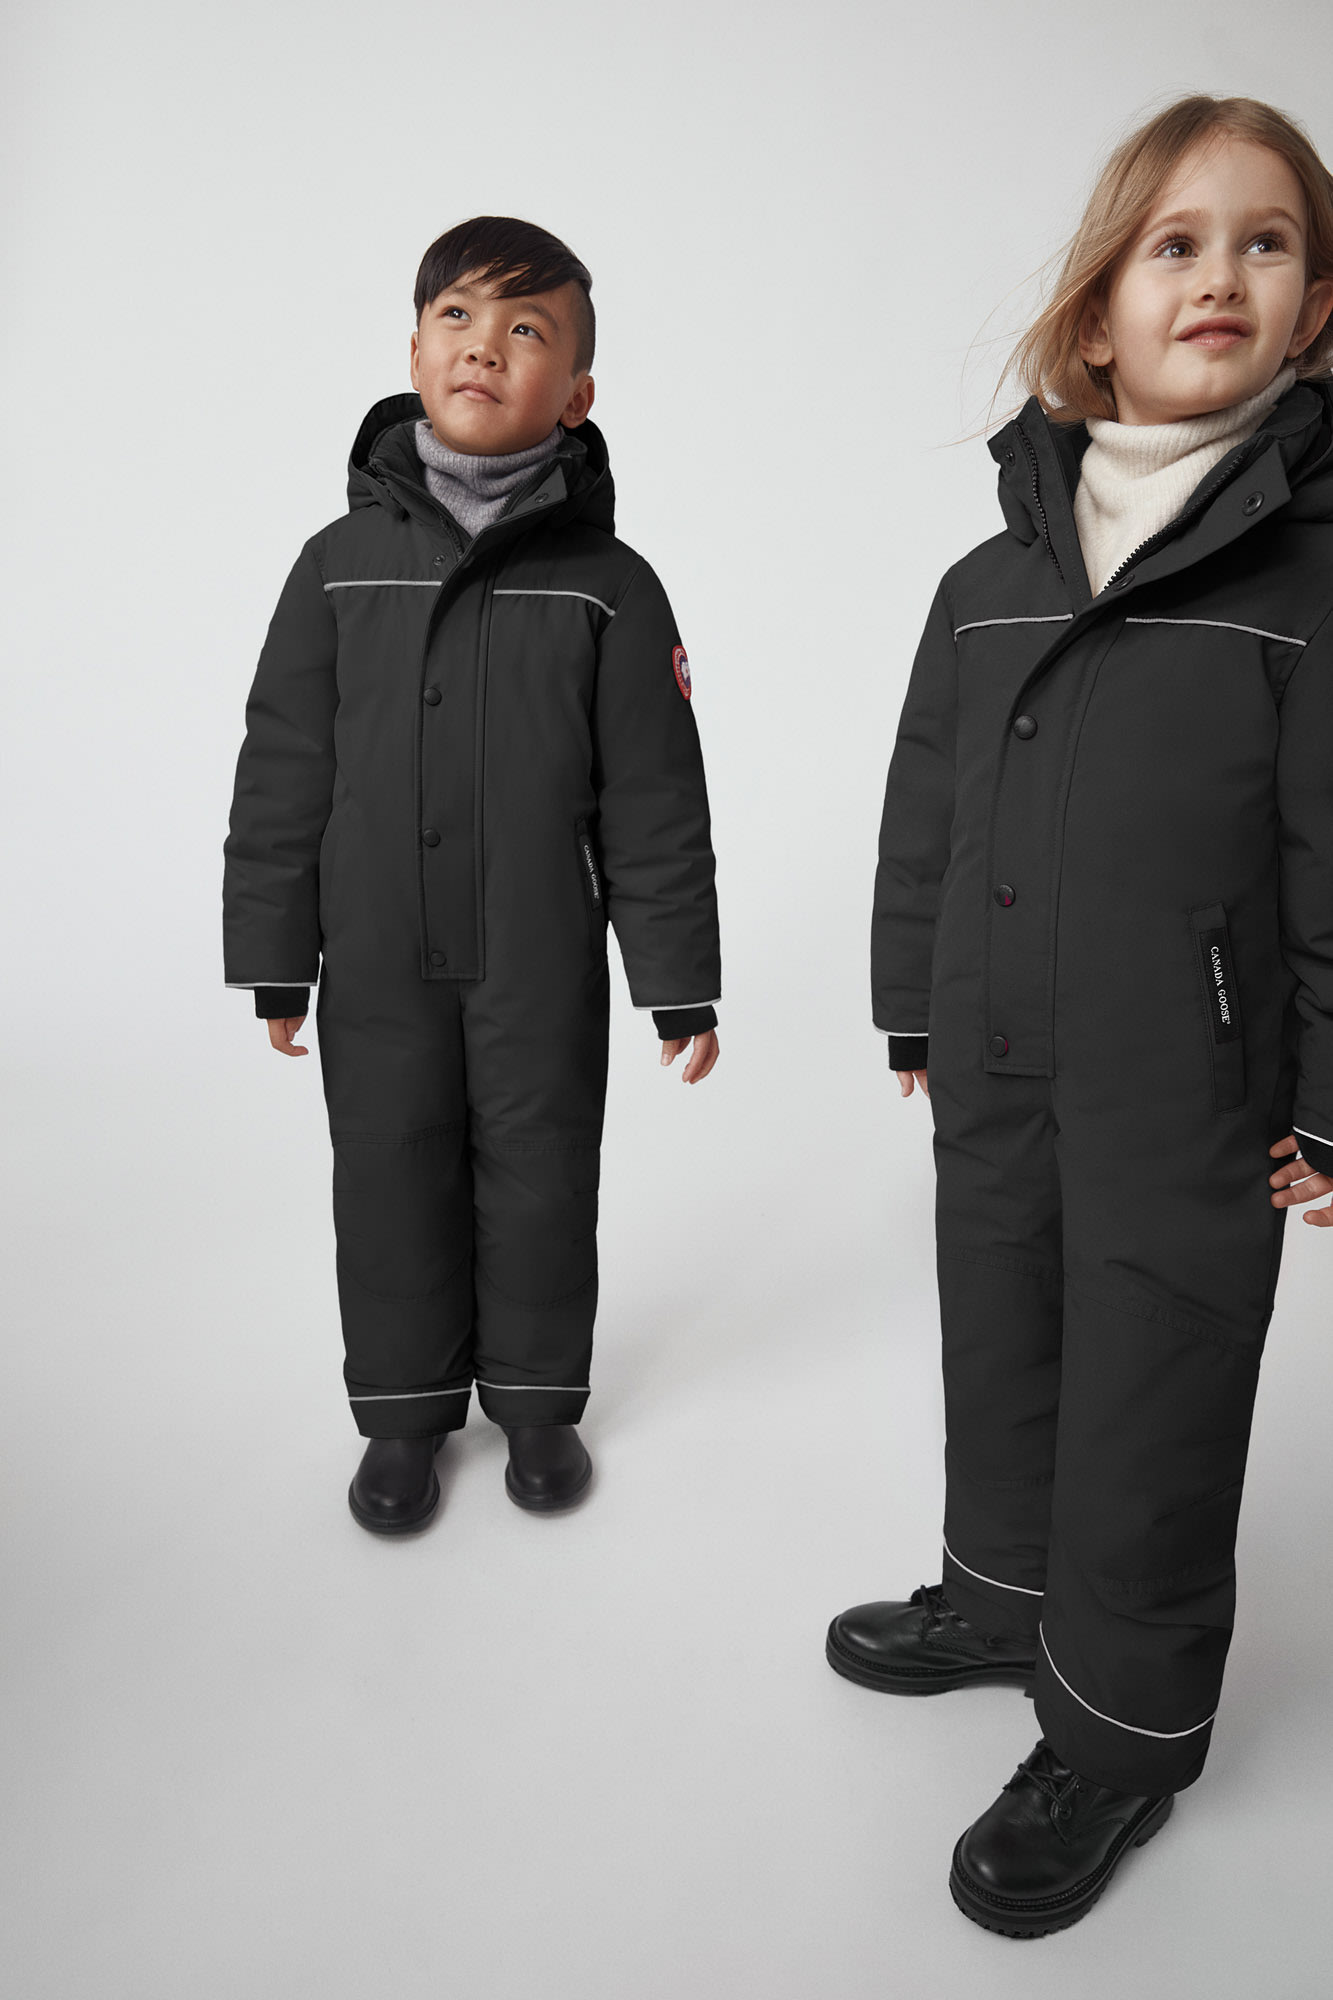 A Christmas Story Kid In Snowsuit.Grizzly Snowsuit